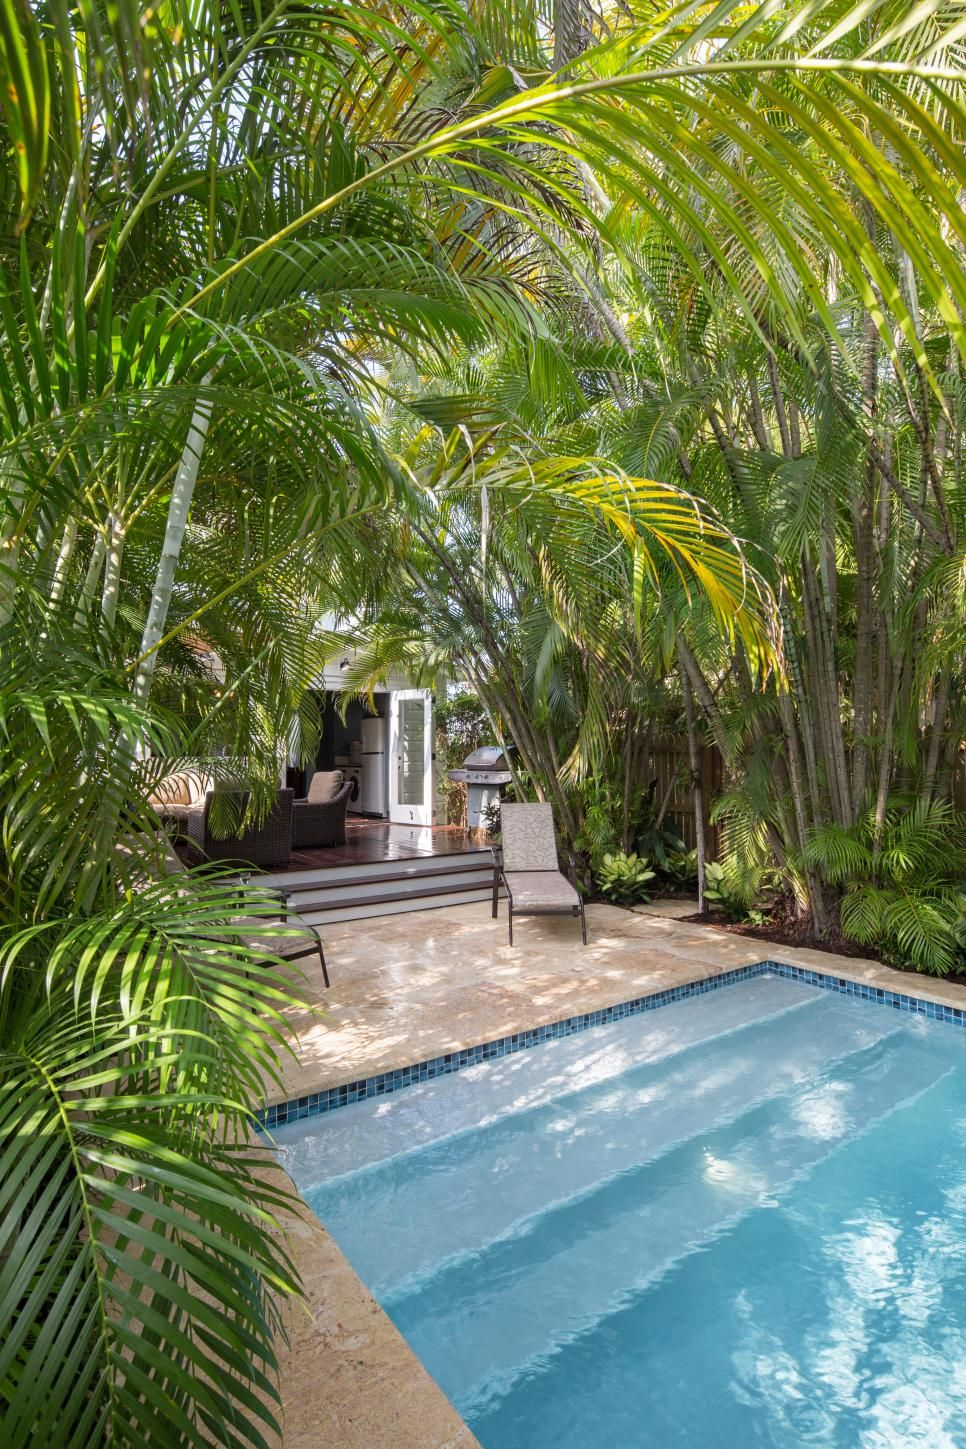 just steps out of this historic key west cottage is a relaxing